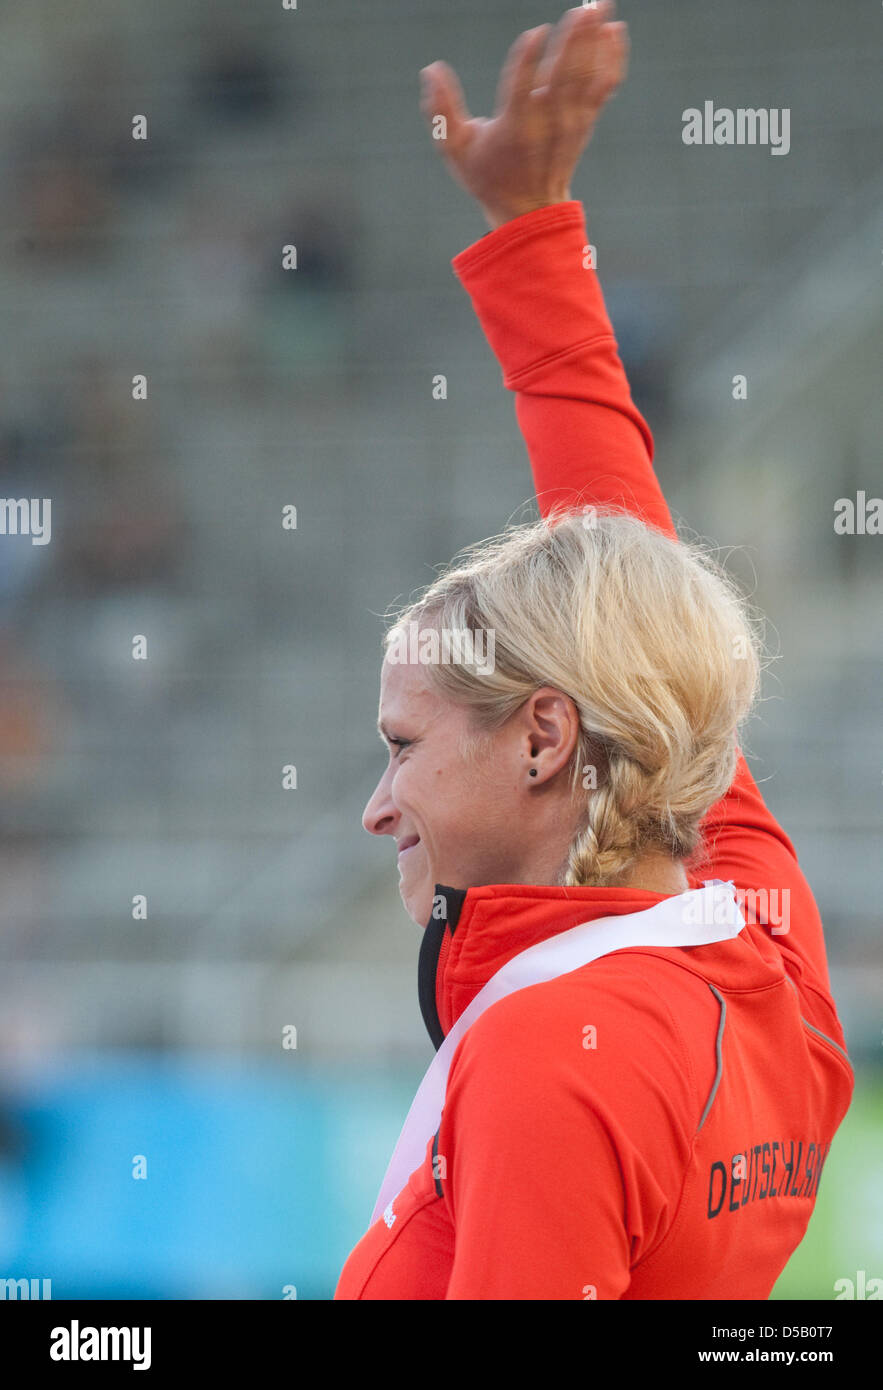 The German sprints gold medalist Verena Sailer presents her medal for her victory in the 100-metre sprints at the - Stock Image